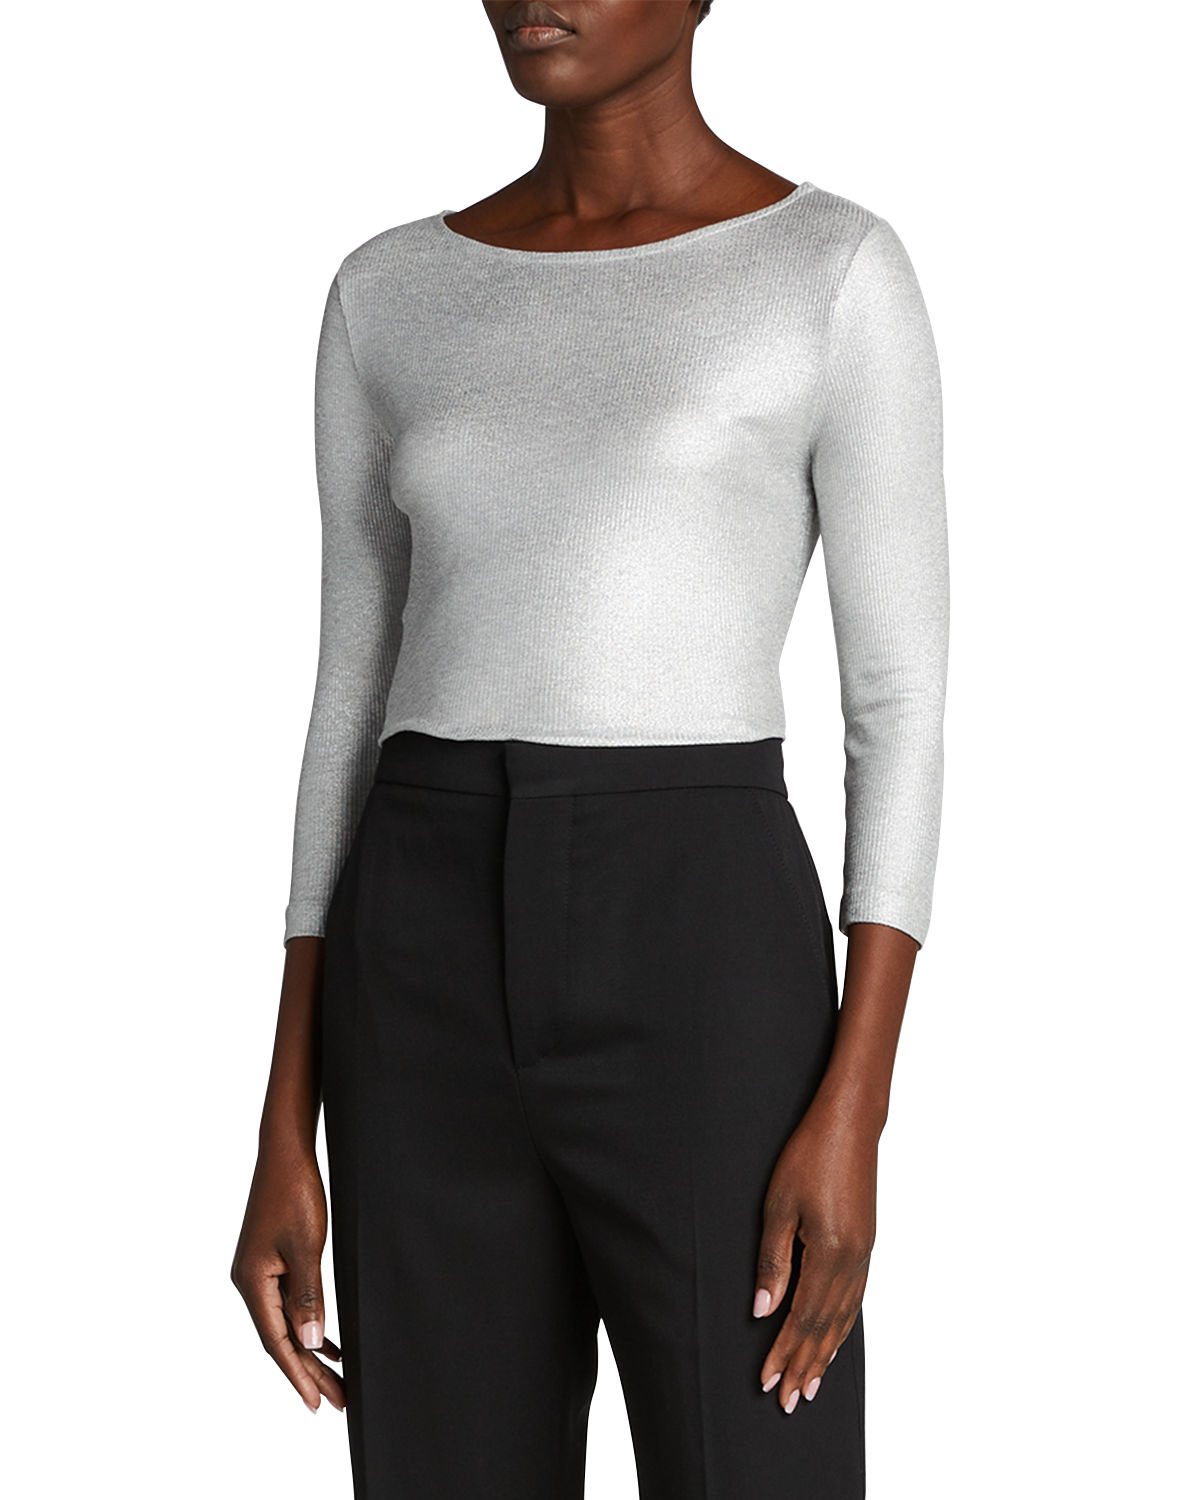 Majestic SOFT-TOUCH METALLIC RIBBED TOP